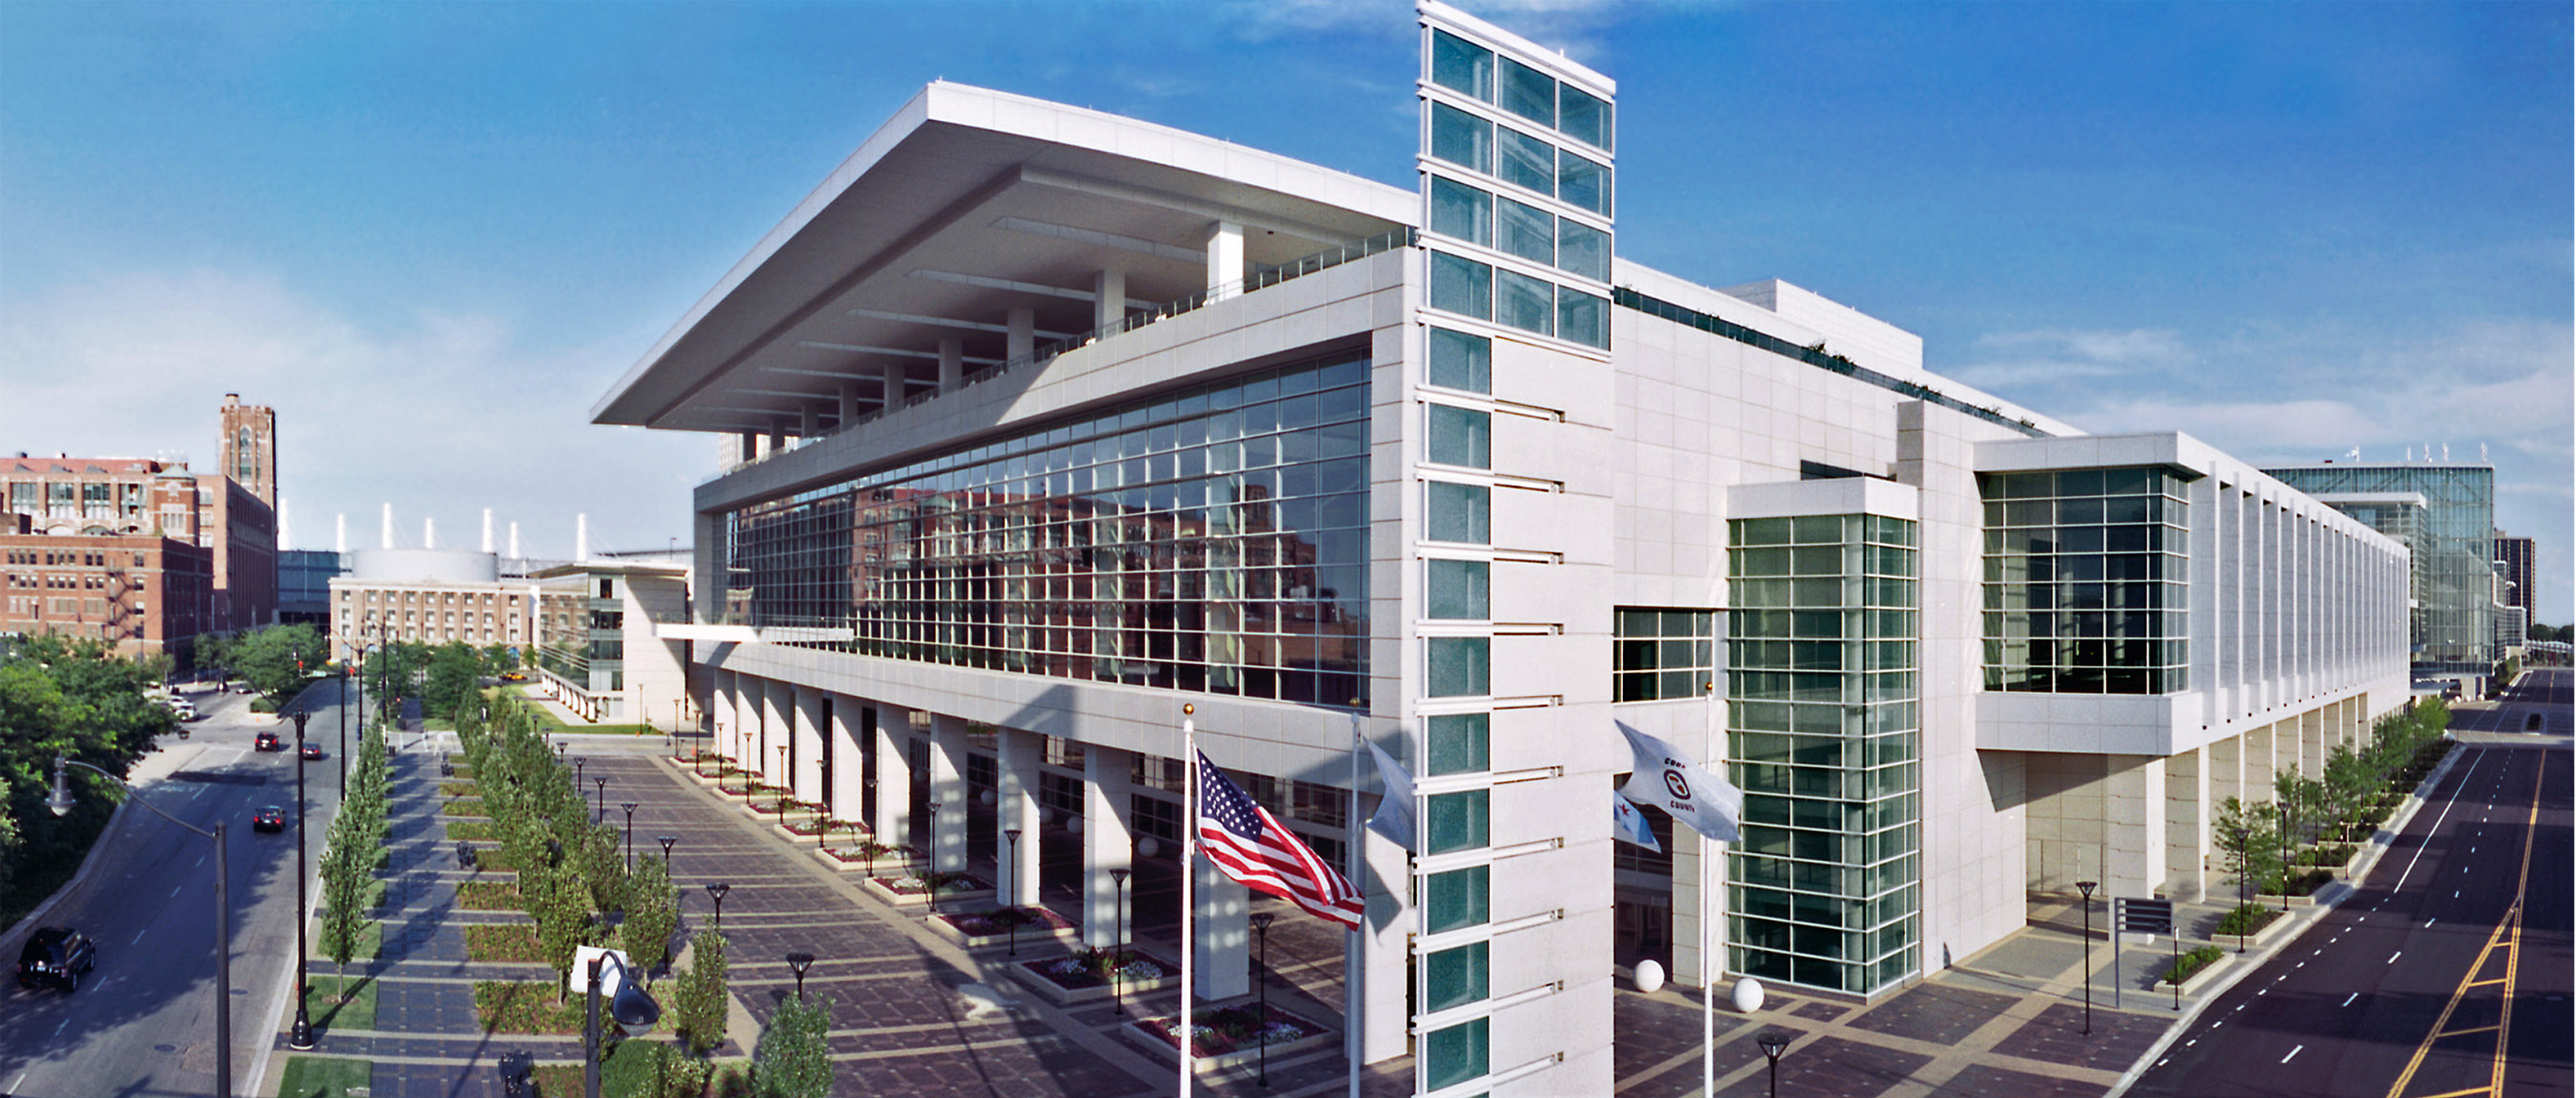 The McCormick Place will host the Institute of Food Technologies show next week.